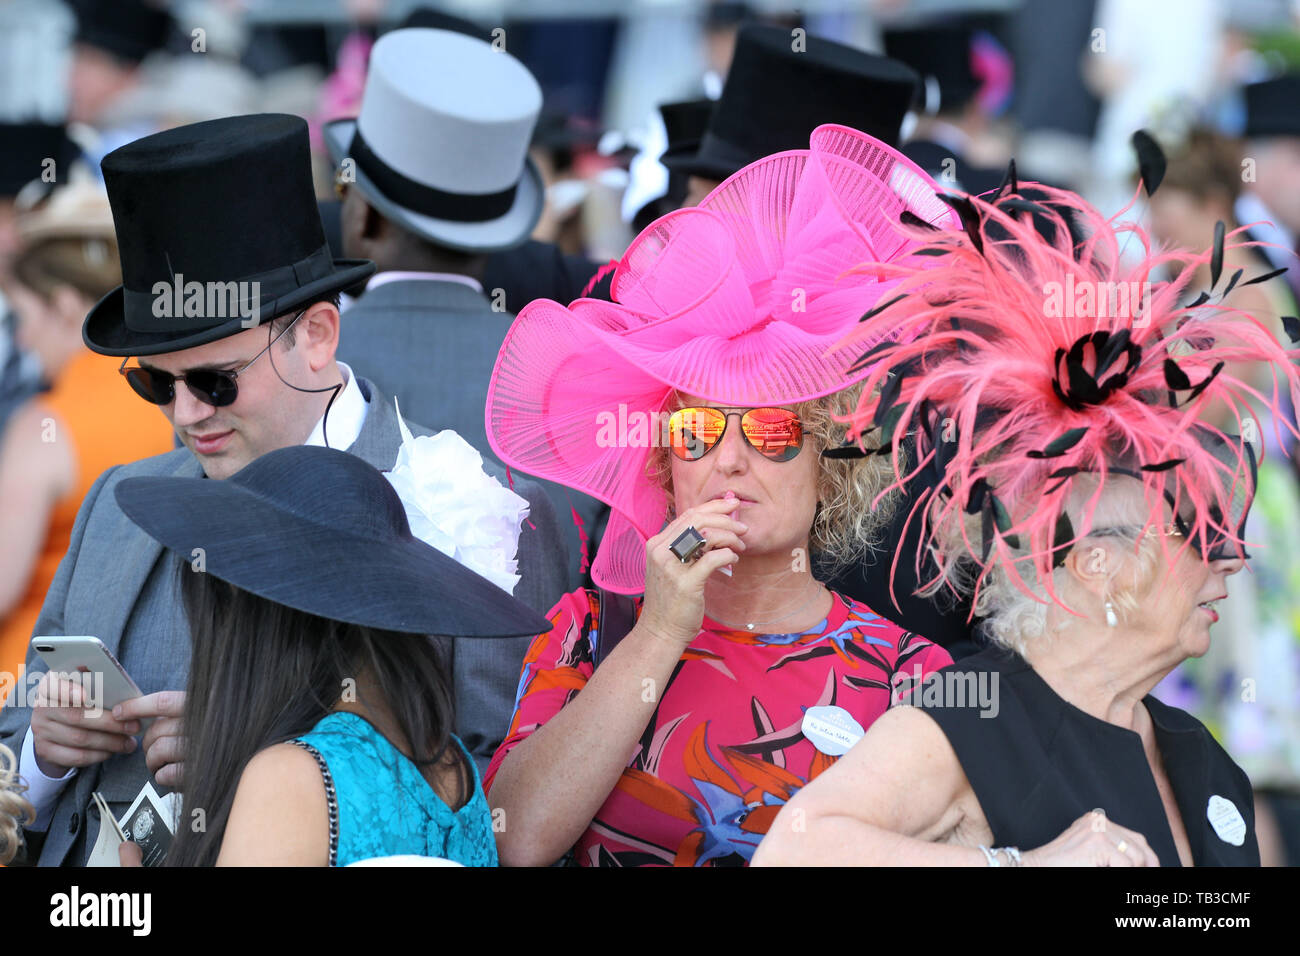 20.06.2018, Ascot, Windsor, UK - Fashion, women with hats and men with top hats at the racecourse. 00S180620D495CAROEX.JPG [MODEL RELEASE: NO, PROPERT - Stock Image